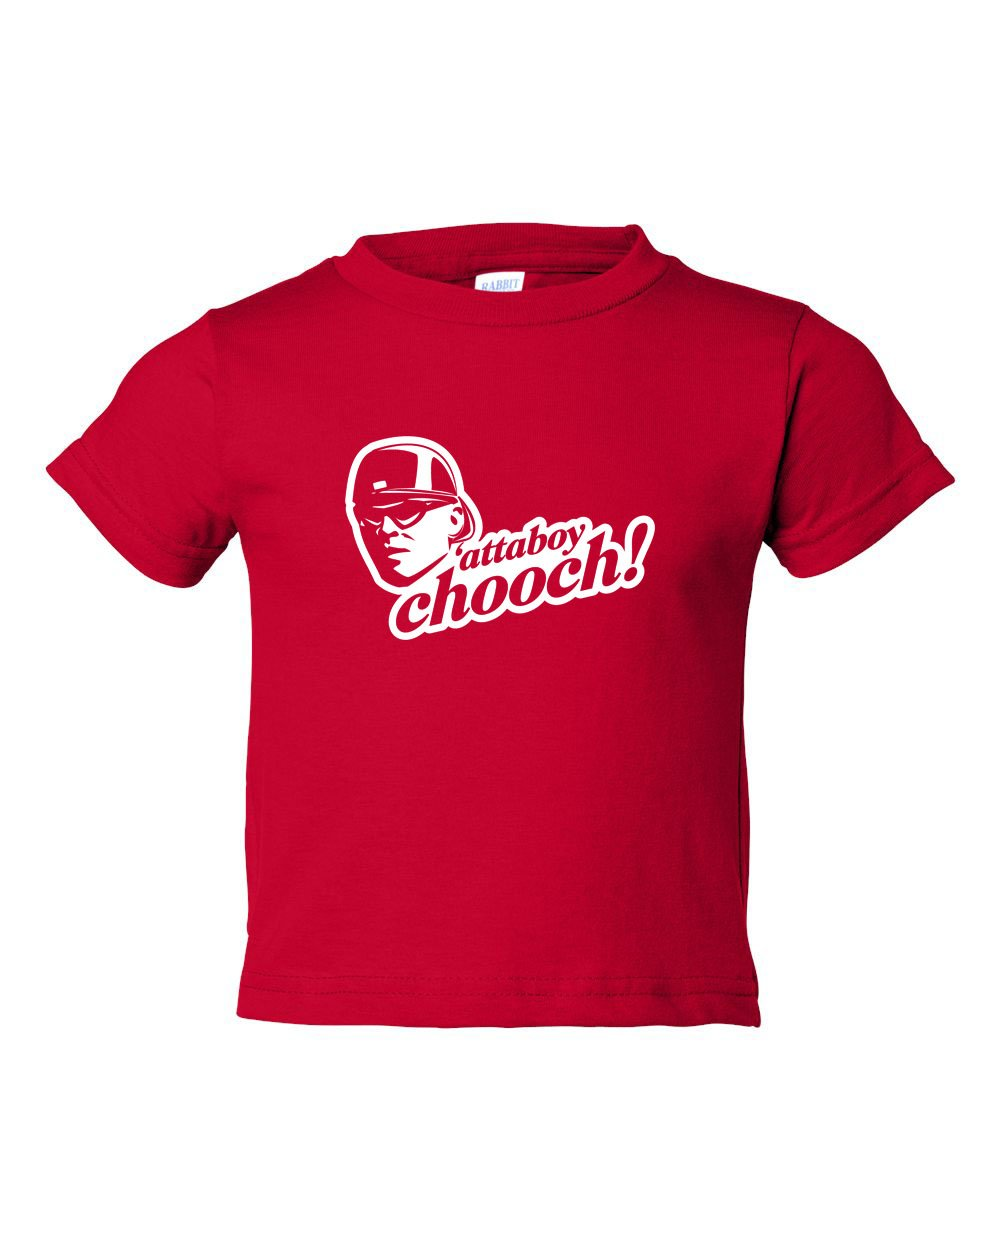 Attaboy Chooch TODDLER T-Shirt